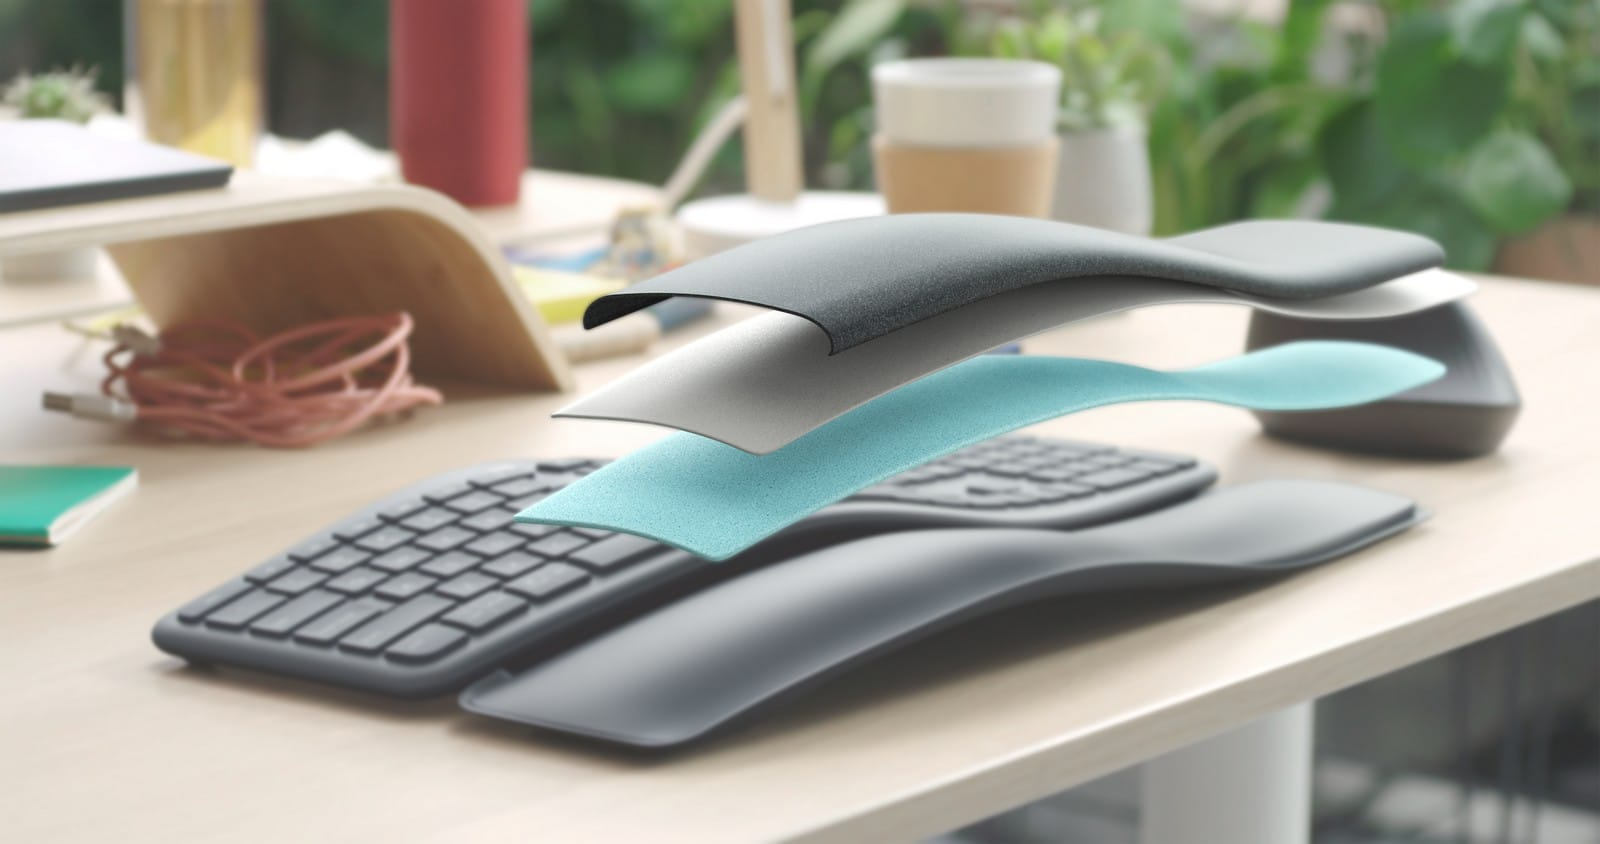 Logitech K860 Split Ergonomic Keyboard